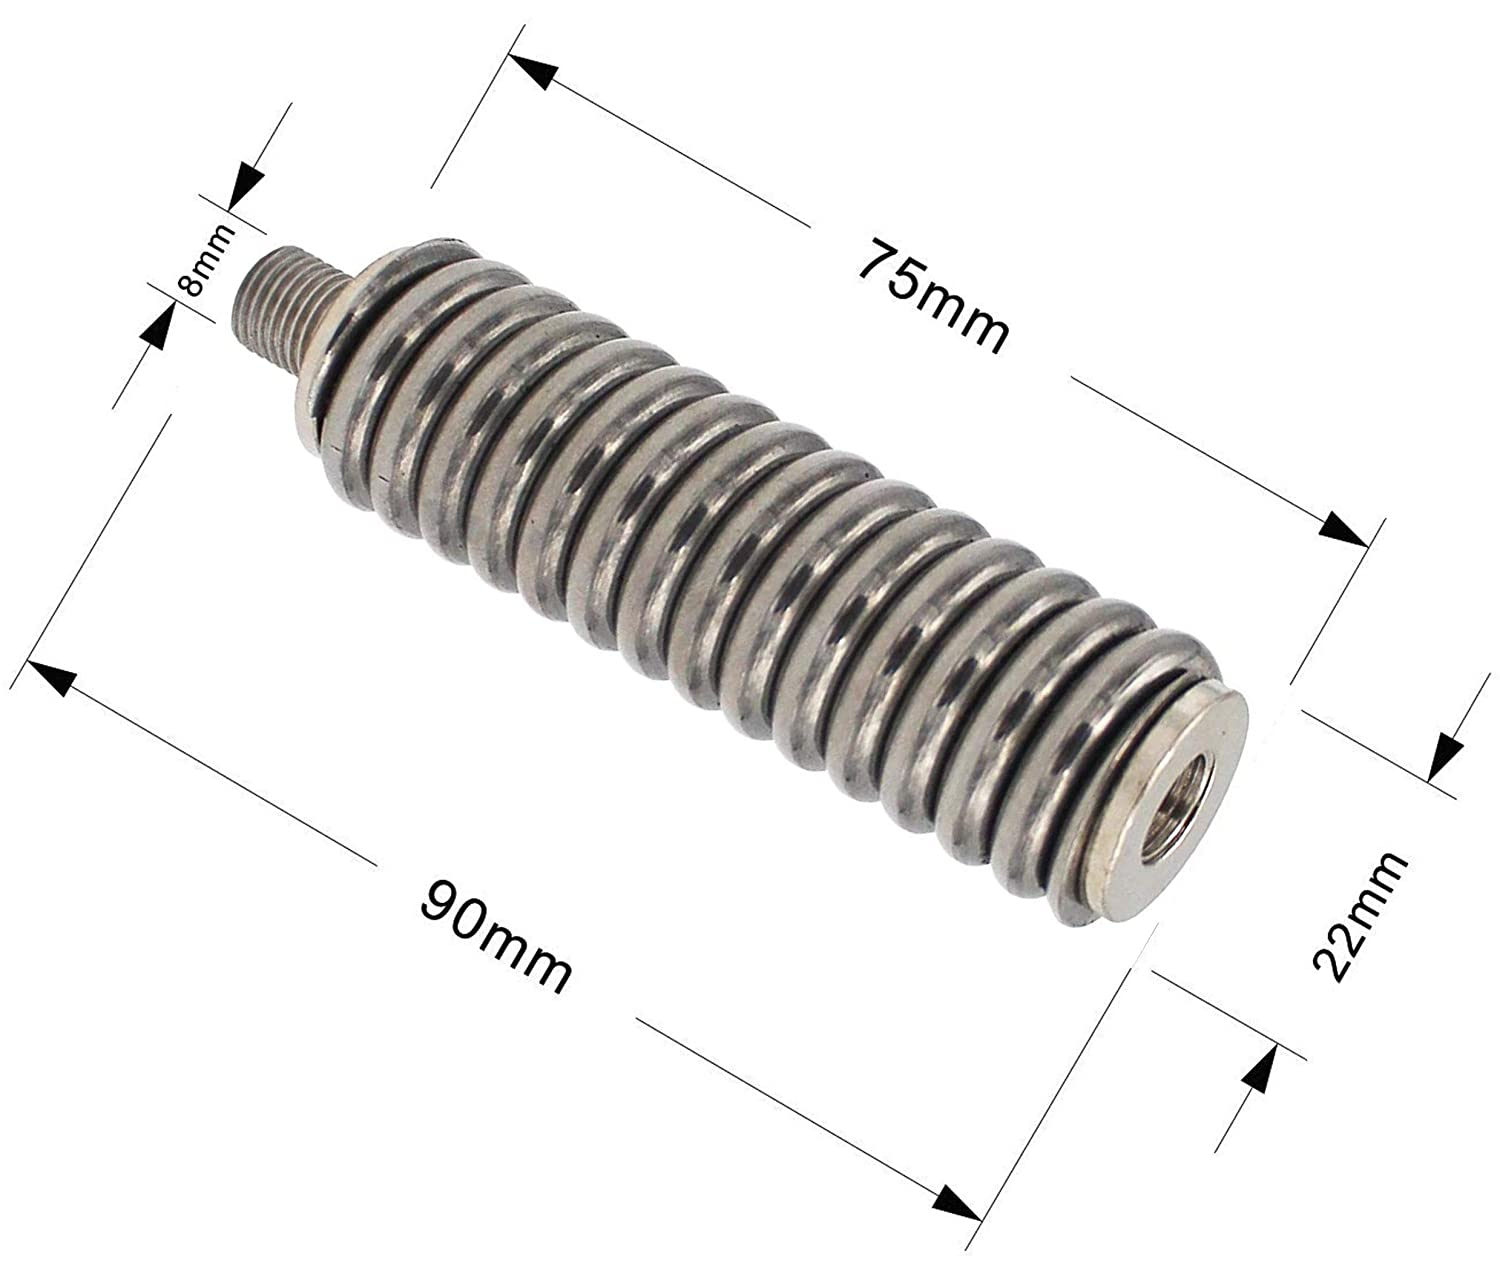 Marketty Antenna Spring SS-3H Heavy Duty Stainless Steel Antenna Spring,Works with Antennas up to 60 Long and Standard 3//8 x 24 Threads